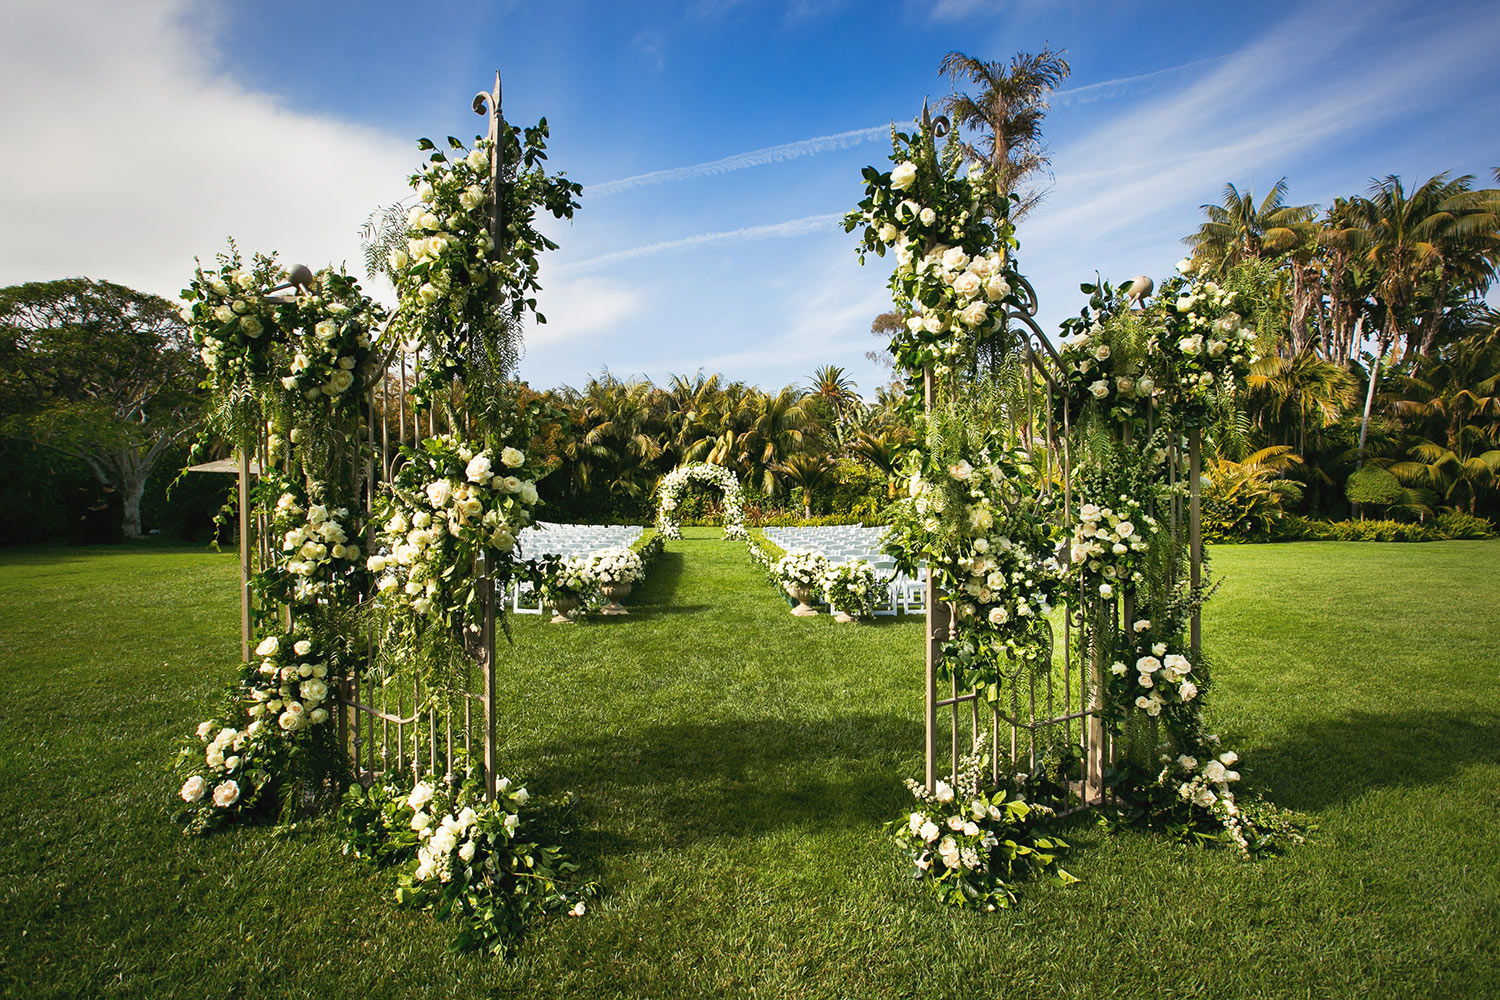 Ornate floral arch and gateway for tropical ceremony, by Callaway Gable